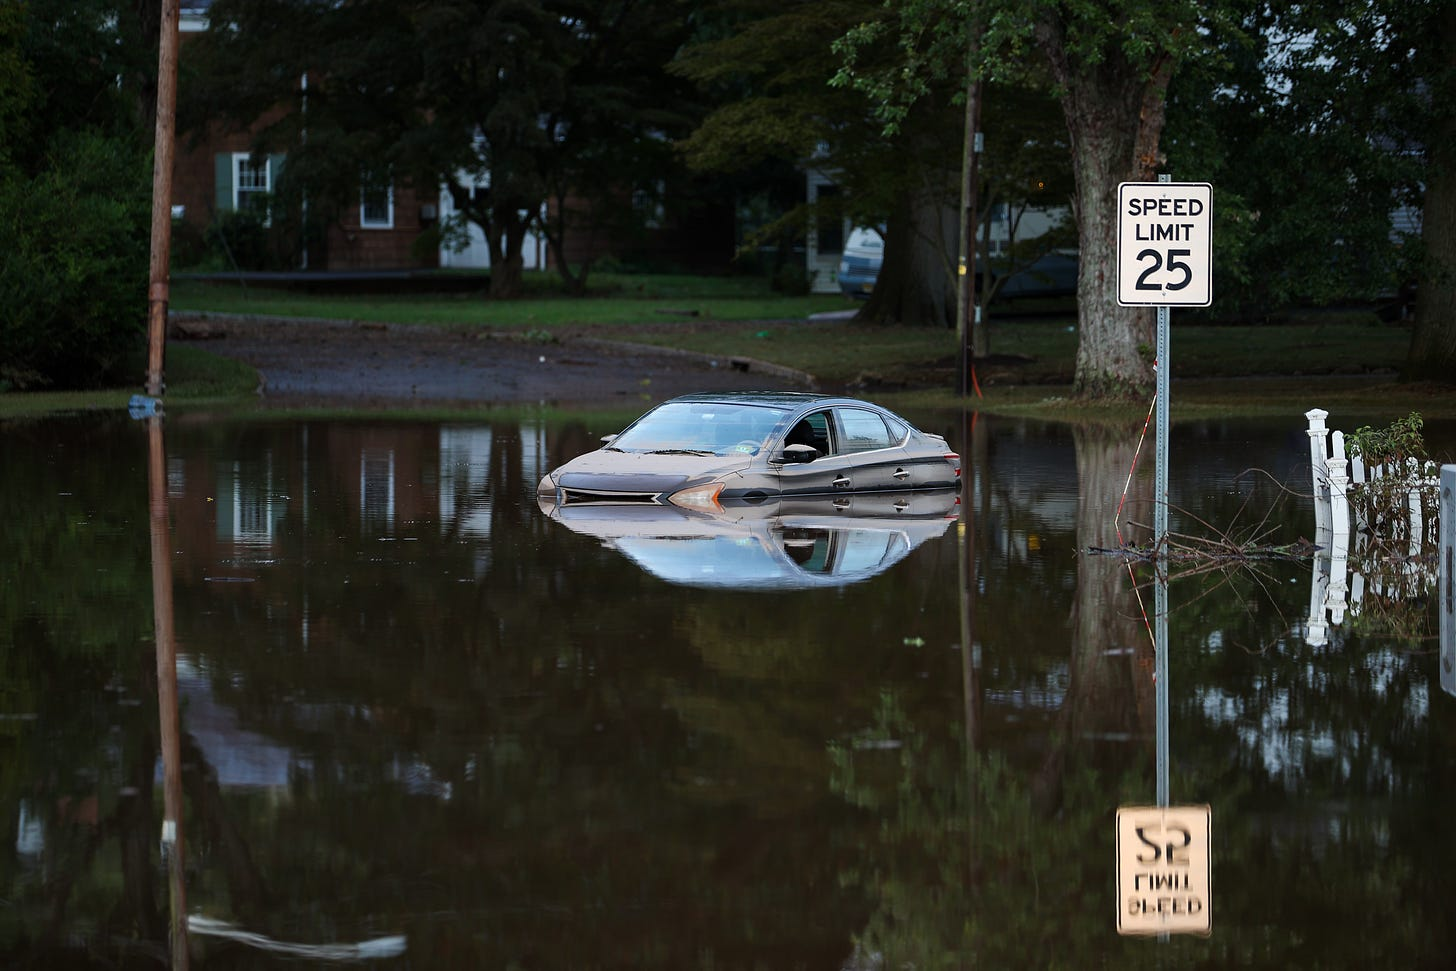 Going well under the speed limit in Bound Brook, NJ, on Sep. 2, 2021. (Photo: Getty Images)